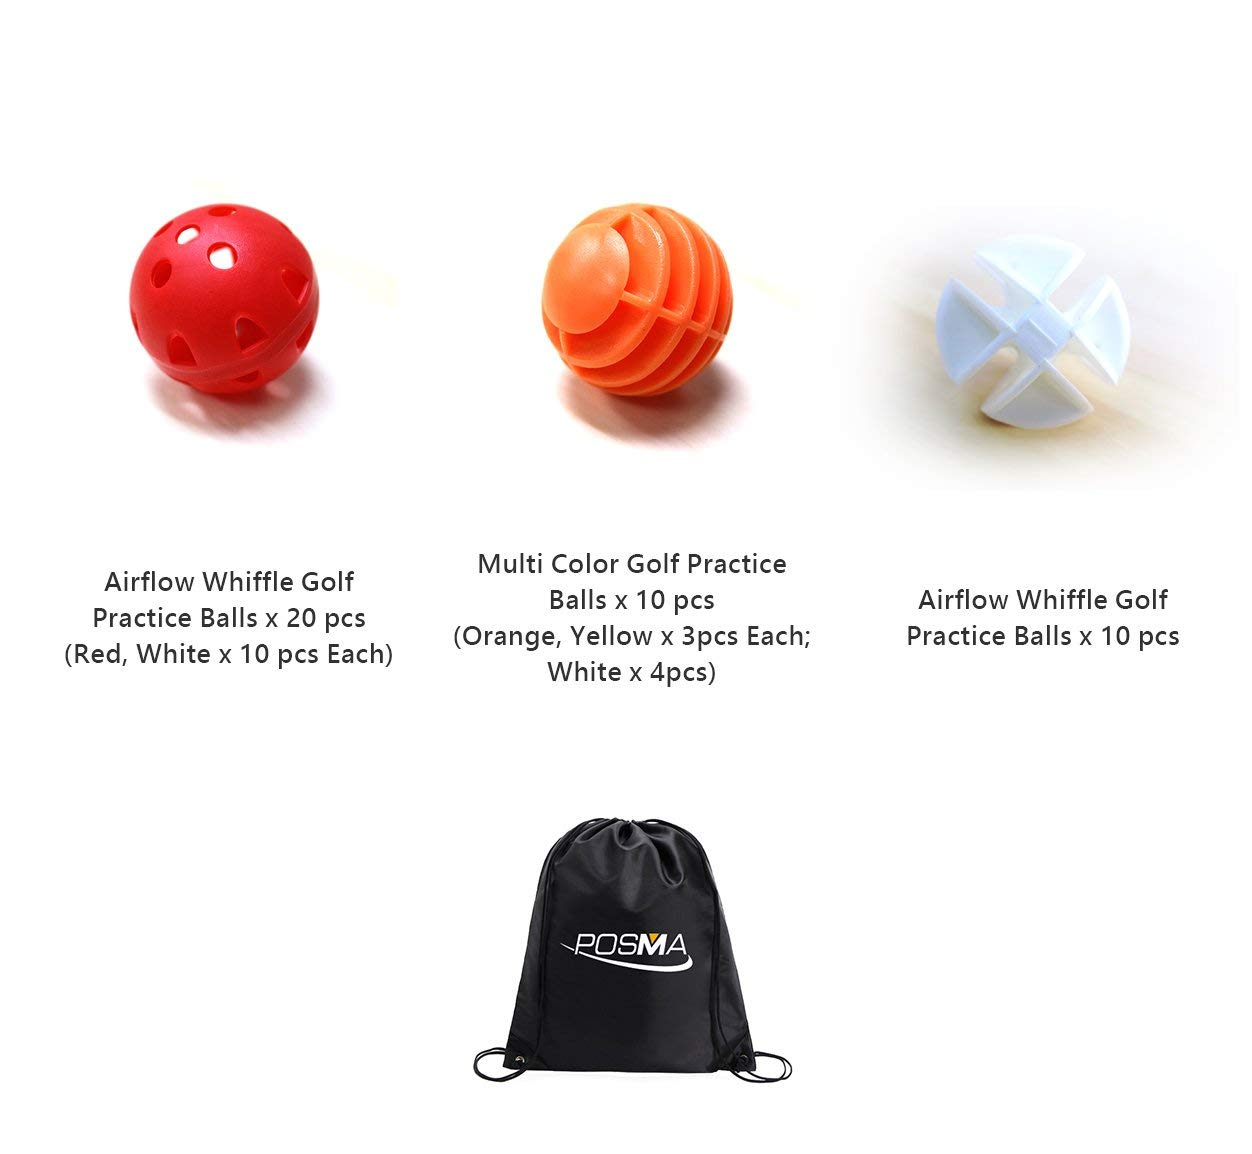 POSMA PB050A Airflow Whiffle Golf Practice Ball Multi Color (Red, White 10pcs Each)+Multi Color Golf Practice Balls+Airflow Whiffle Golf Practice Ball in white Color+Cinch Sack Carry Bag